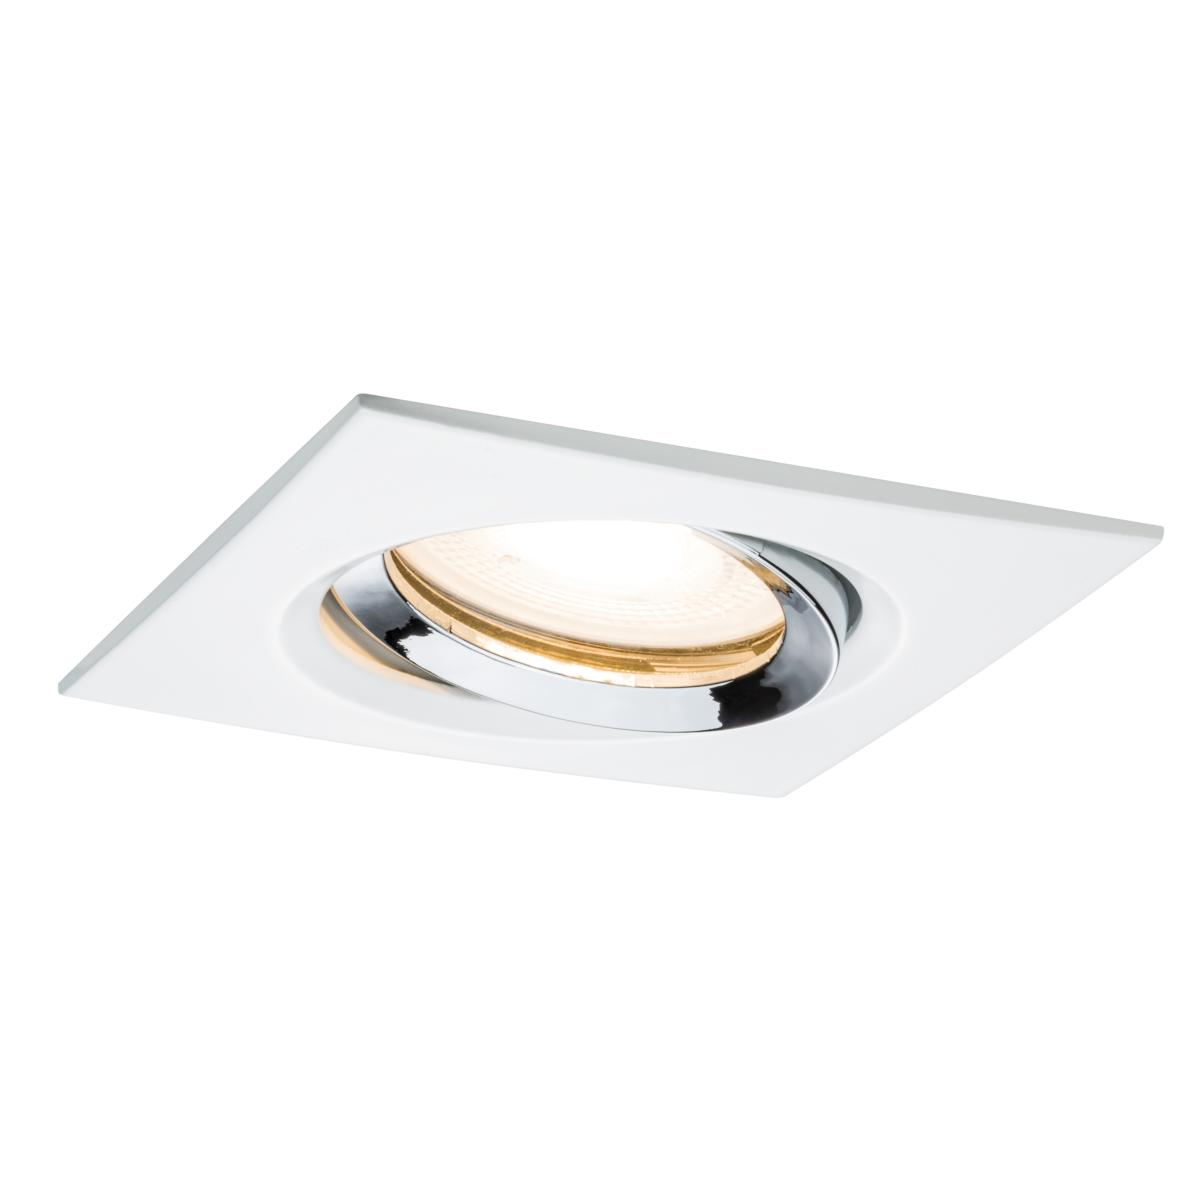 Spot led salle de bain 12v photographs galerie d for Spot led ip65 salle bain